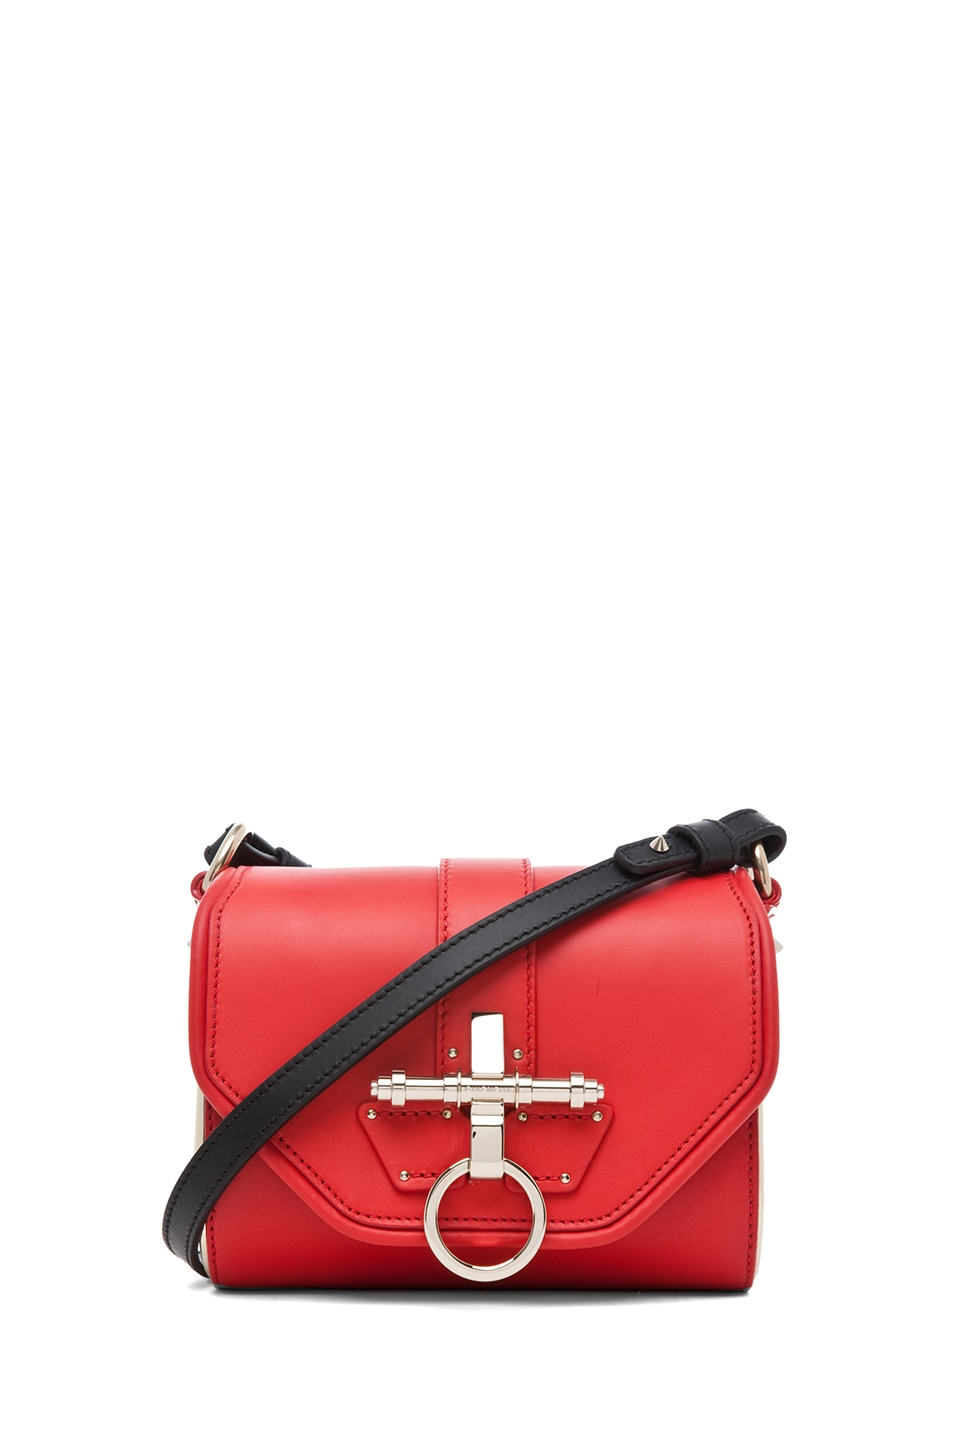 79ef8c8cc8 Image 1 of Givenchy Obsedia Crossbody in Red Multi